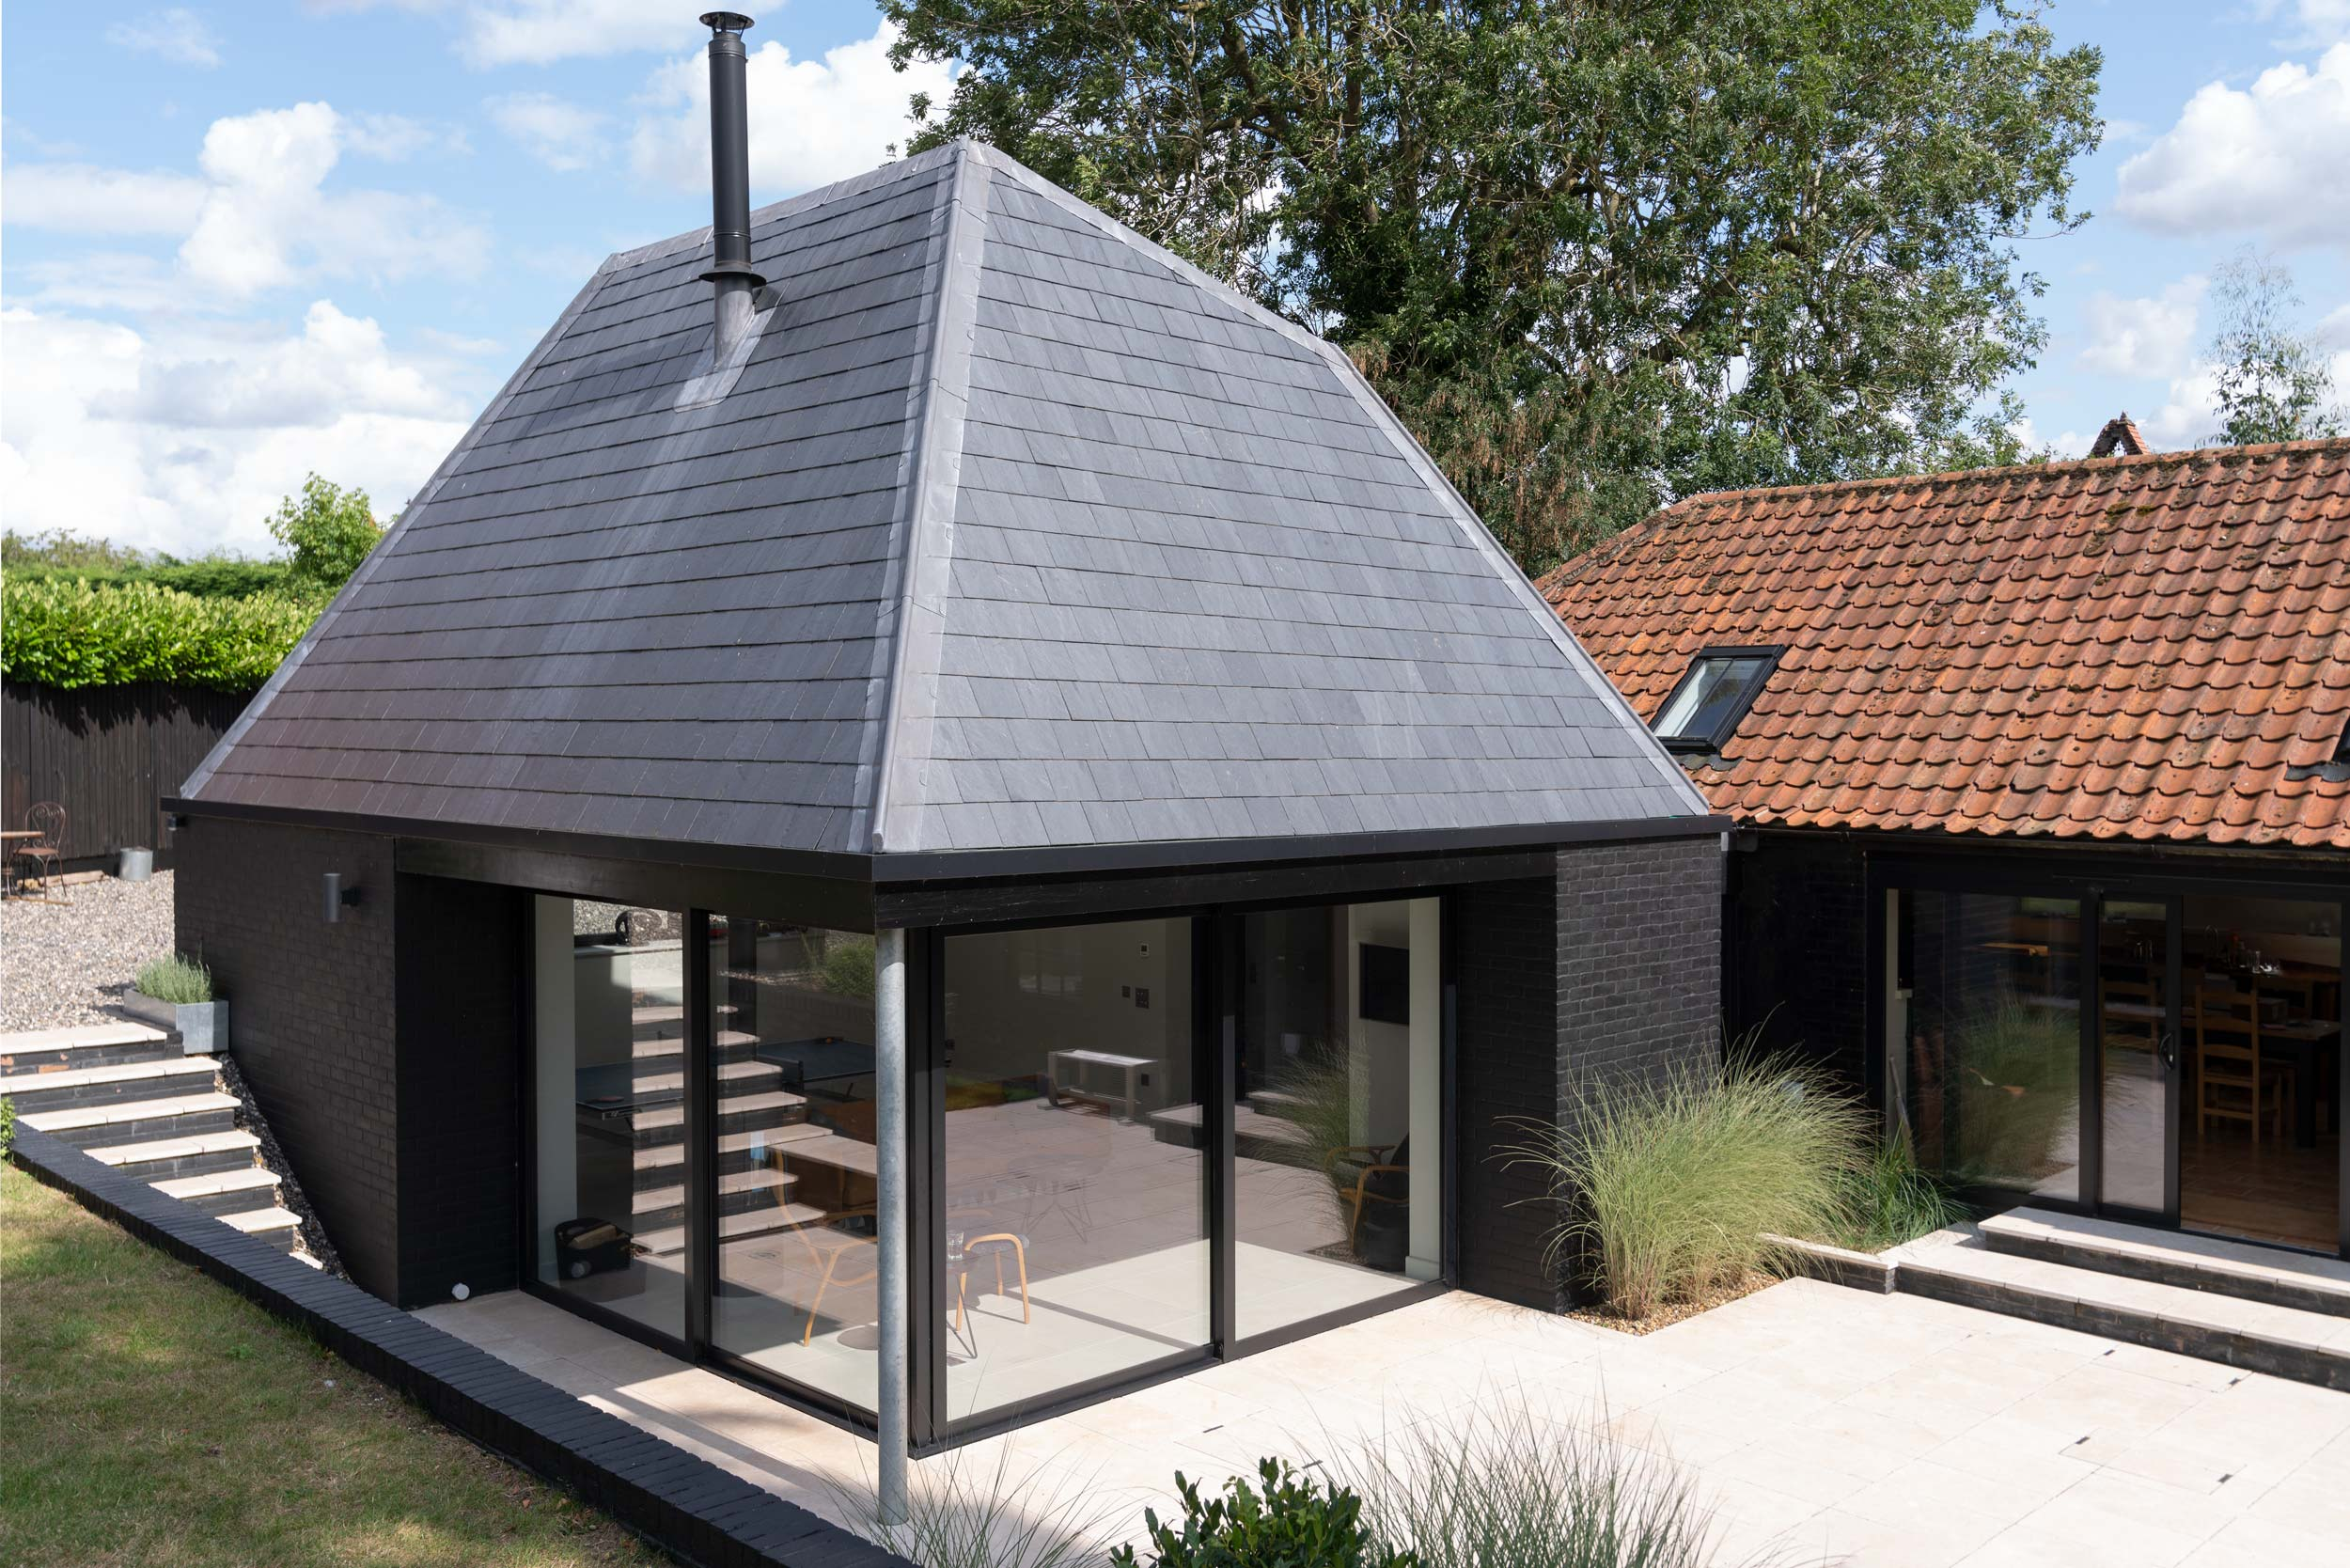 Fiona-Burrage-Lucas-And-Western-Architects-Wymondham-Extension.jpg